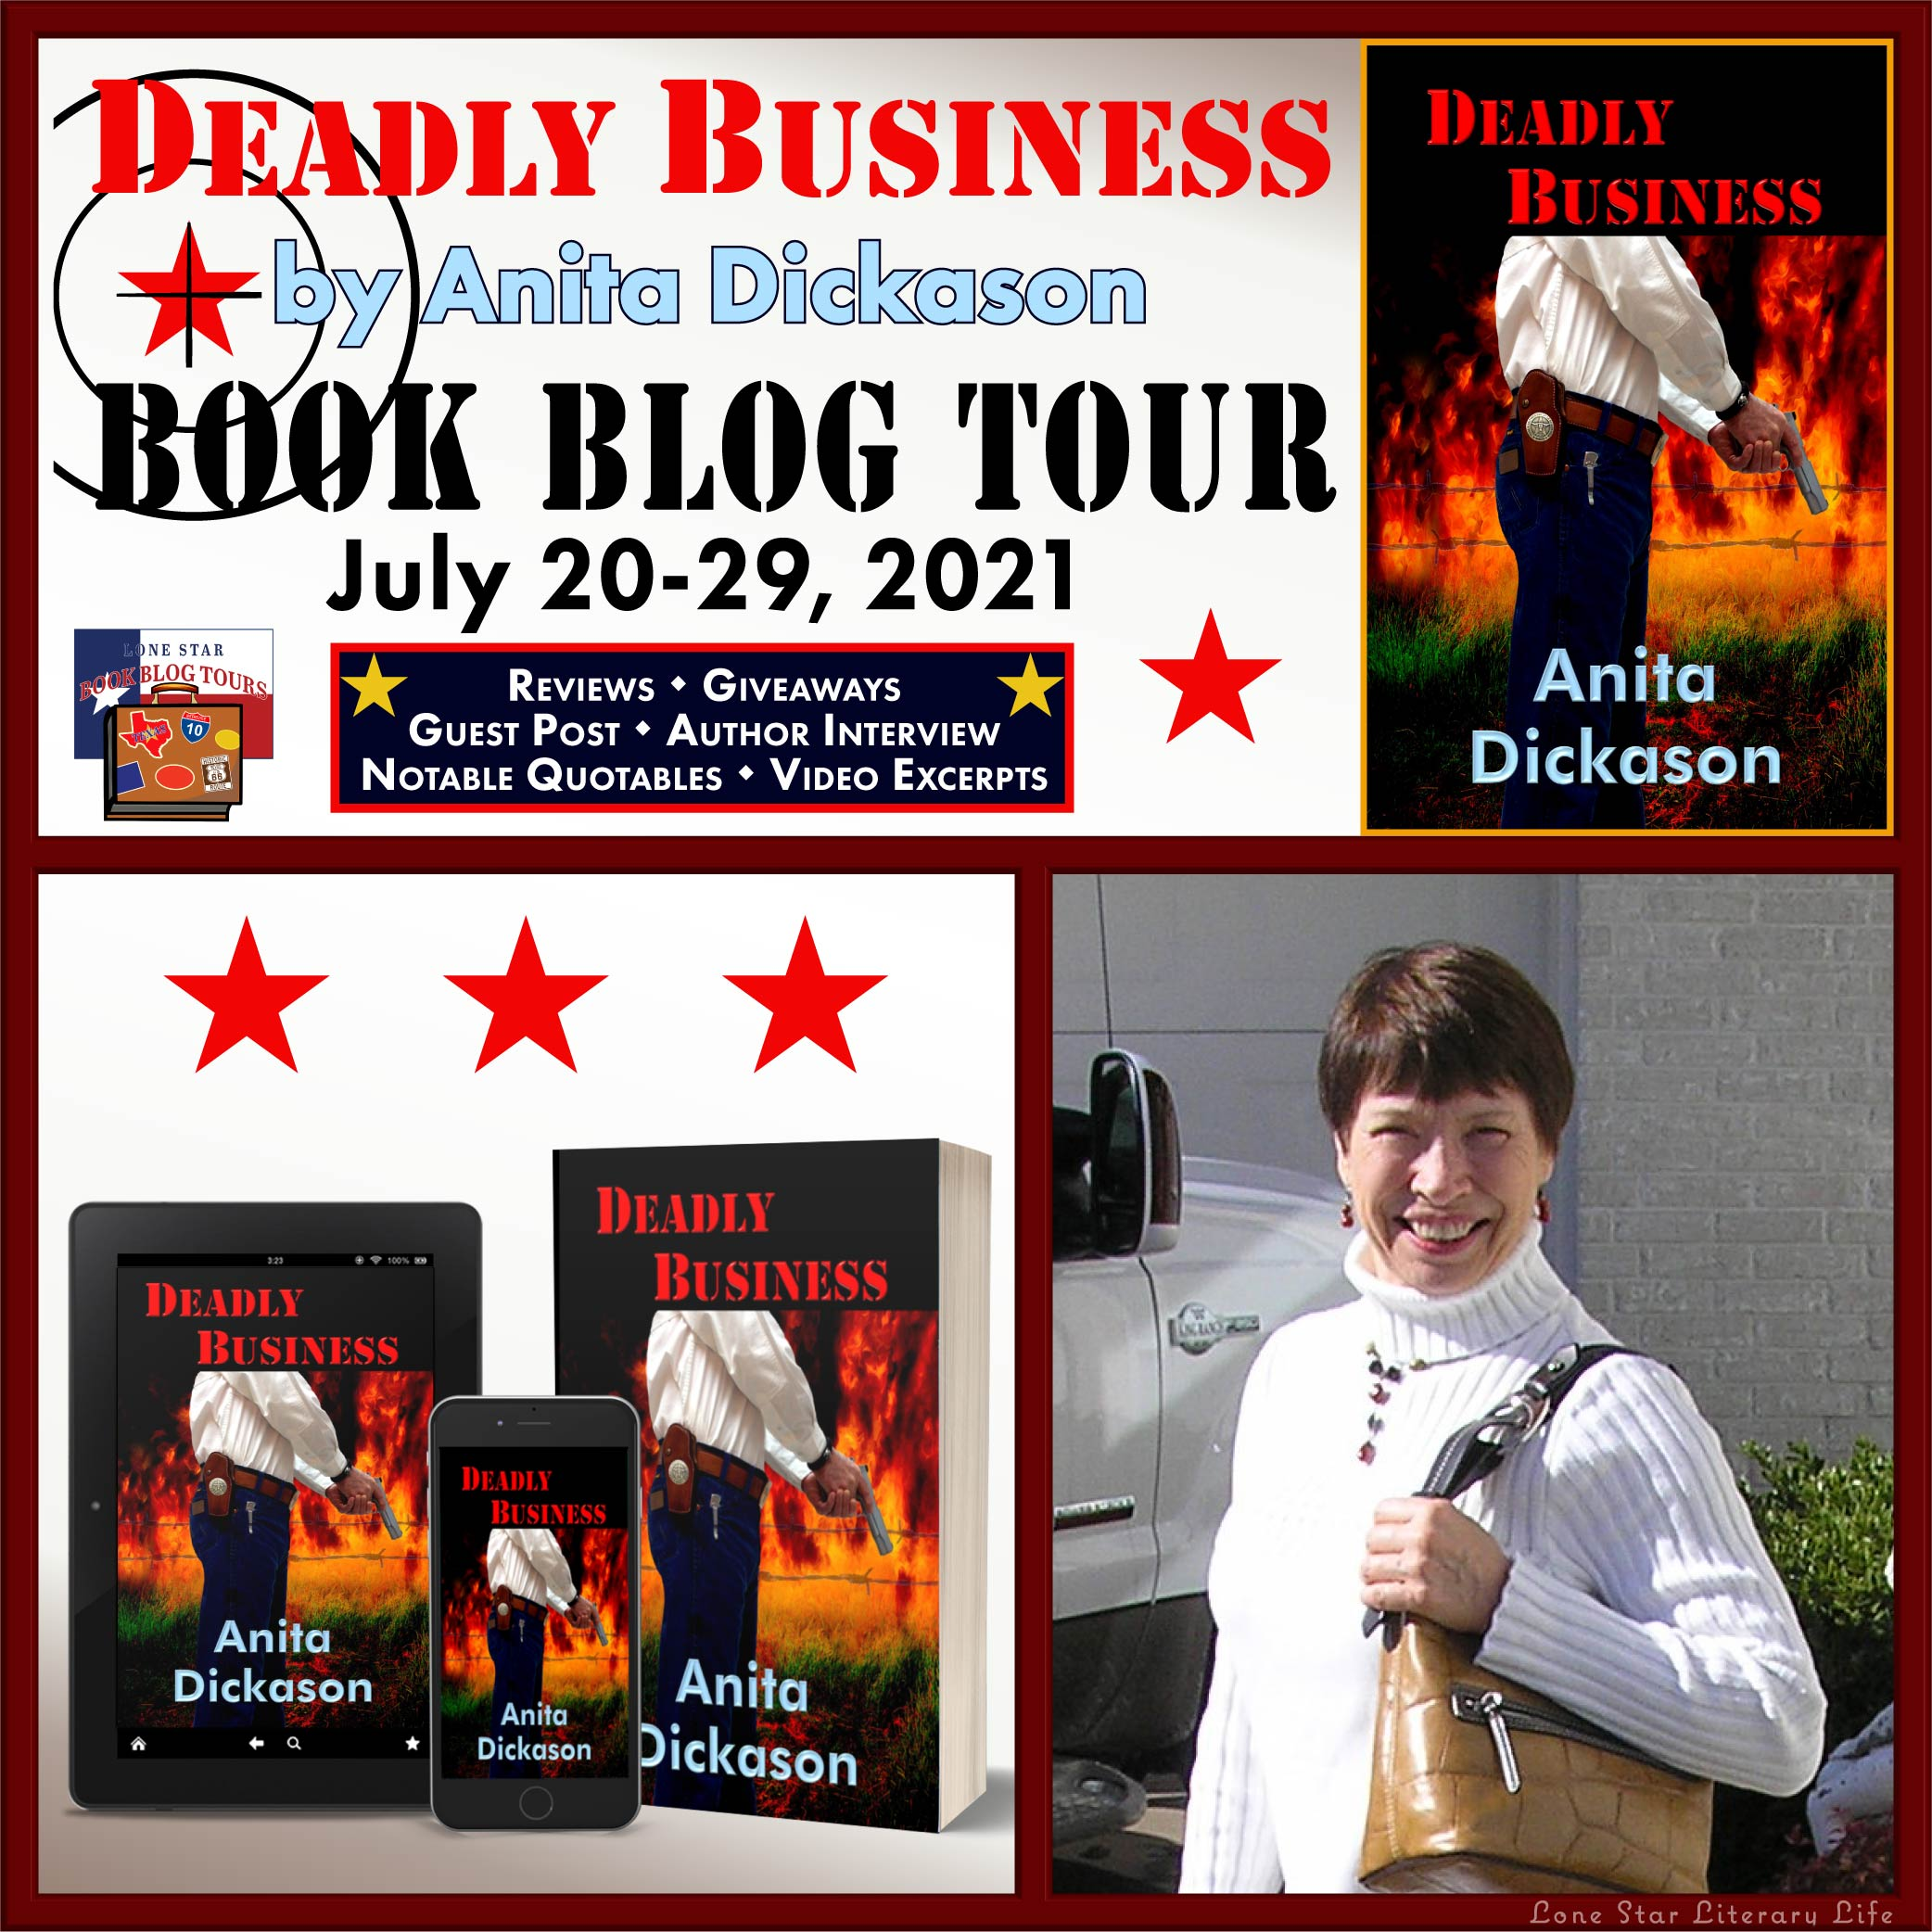 Review & Giveaway: Deadly Business by Anita Dickason